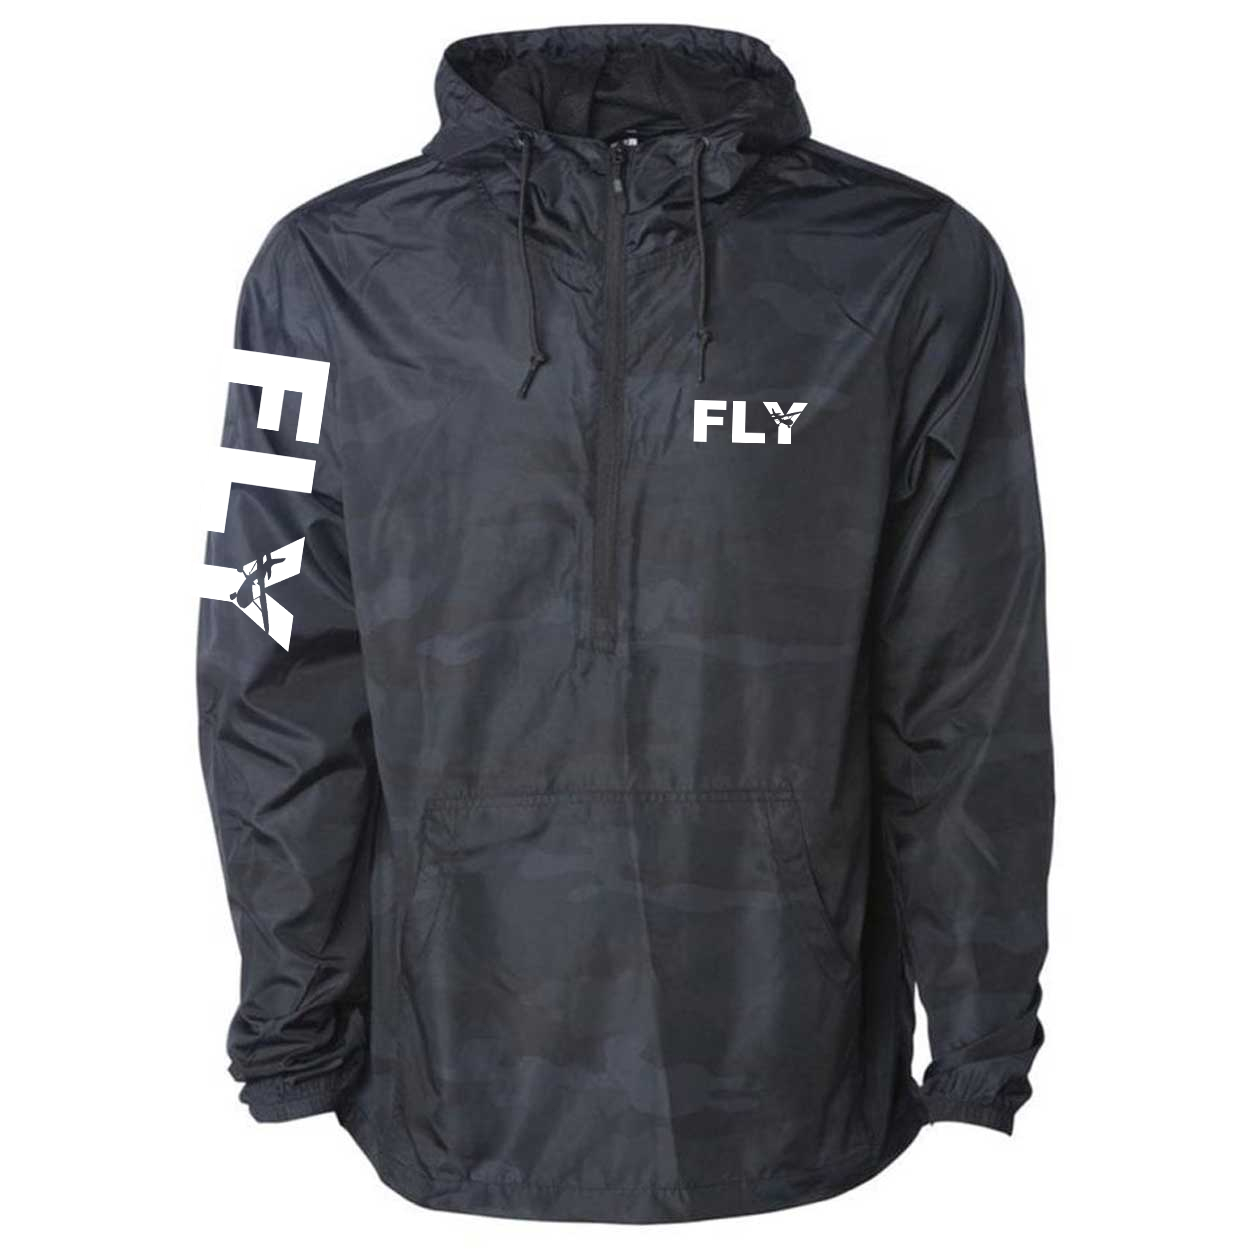 Fly Airplane Logo Classic Lightweight Pullover Windbreaker Black Camo (White Logo)